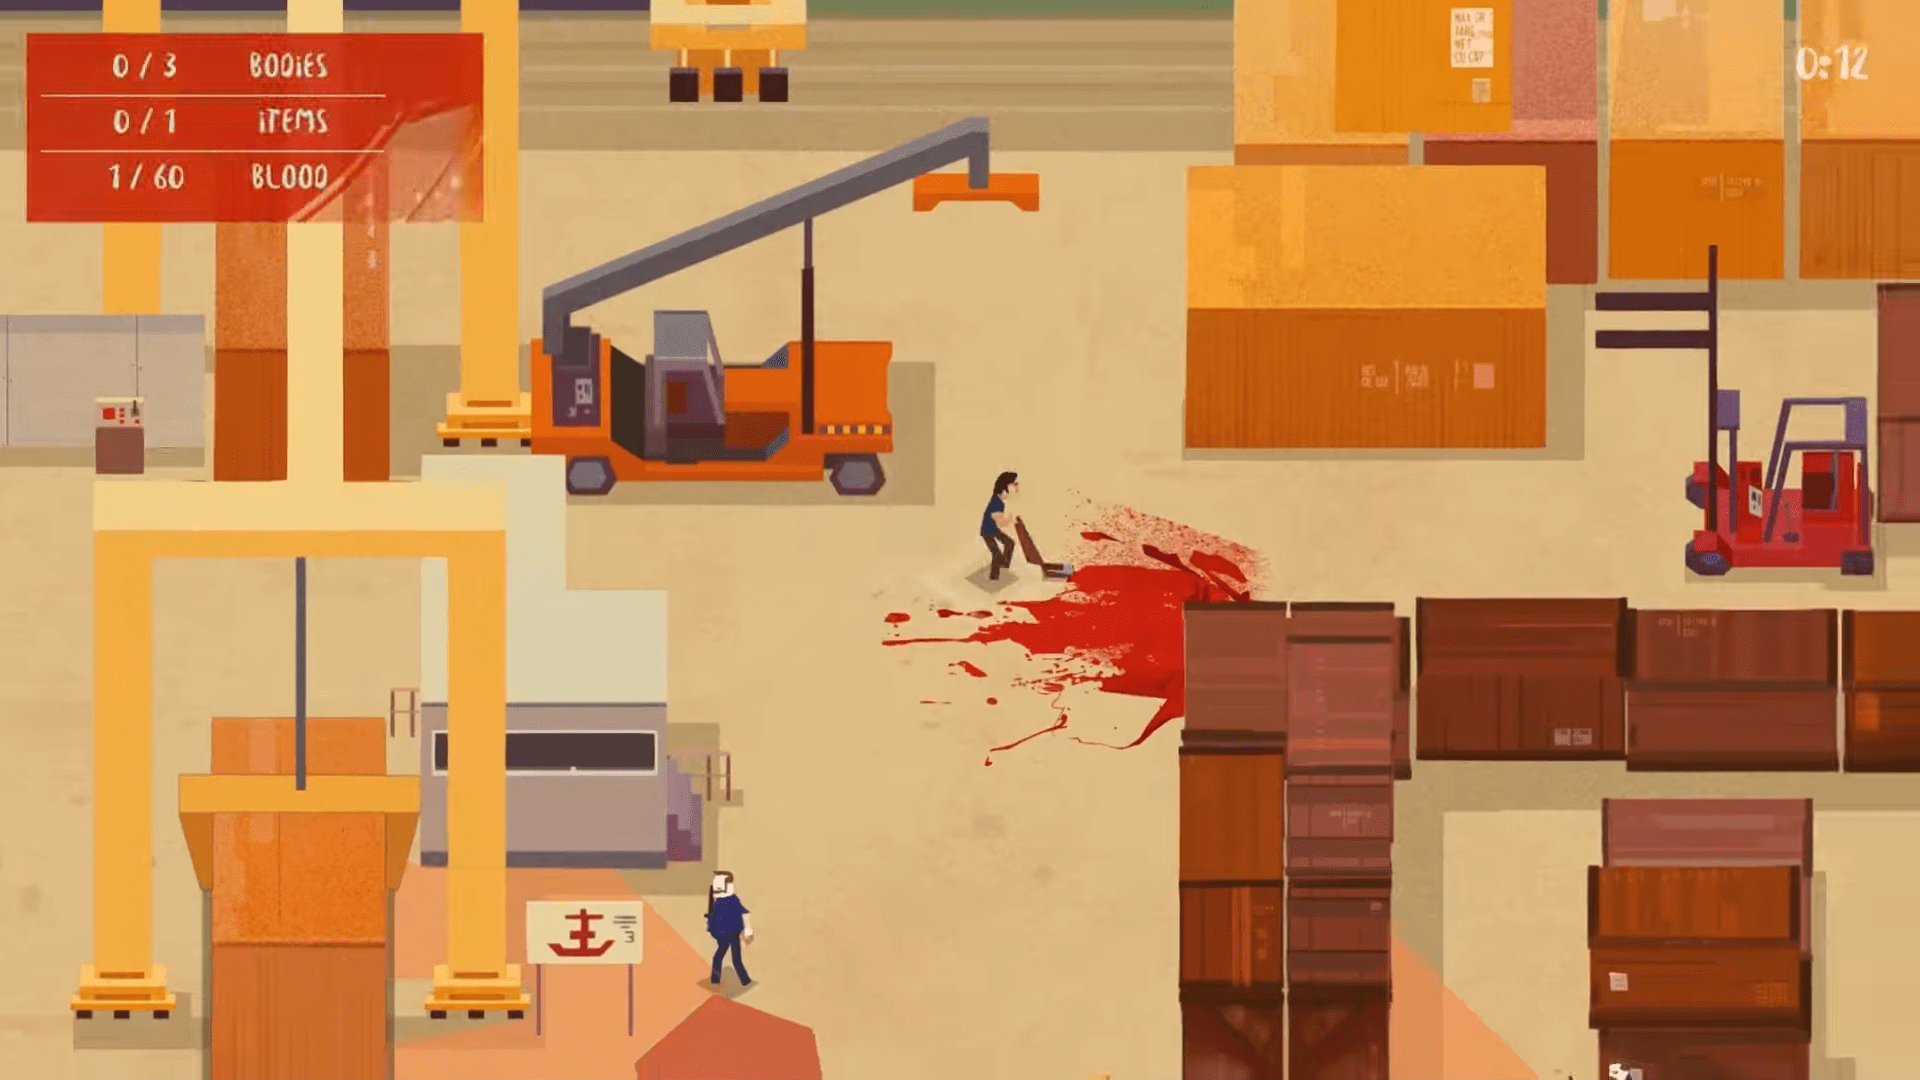 Humble Bundle Free Games 2020.Serial Cleaner Is Completely Free On Humble Bundle Right